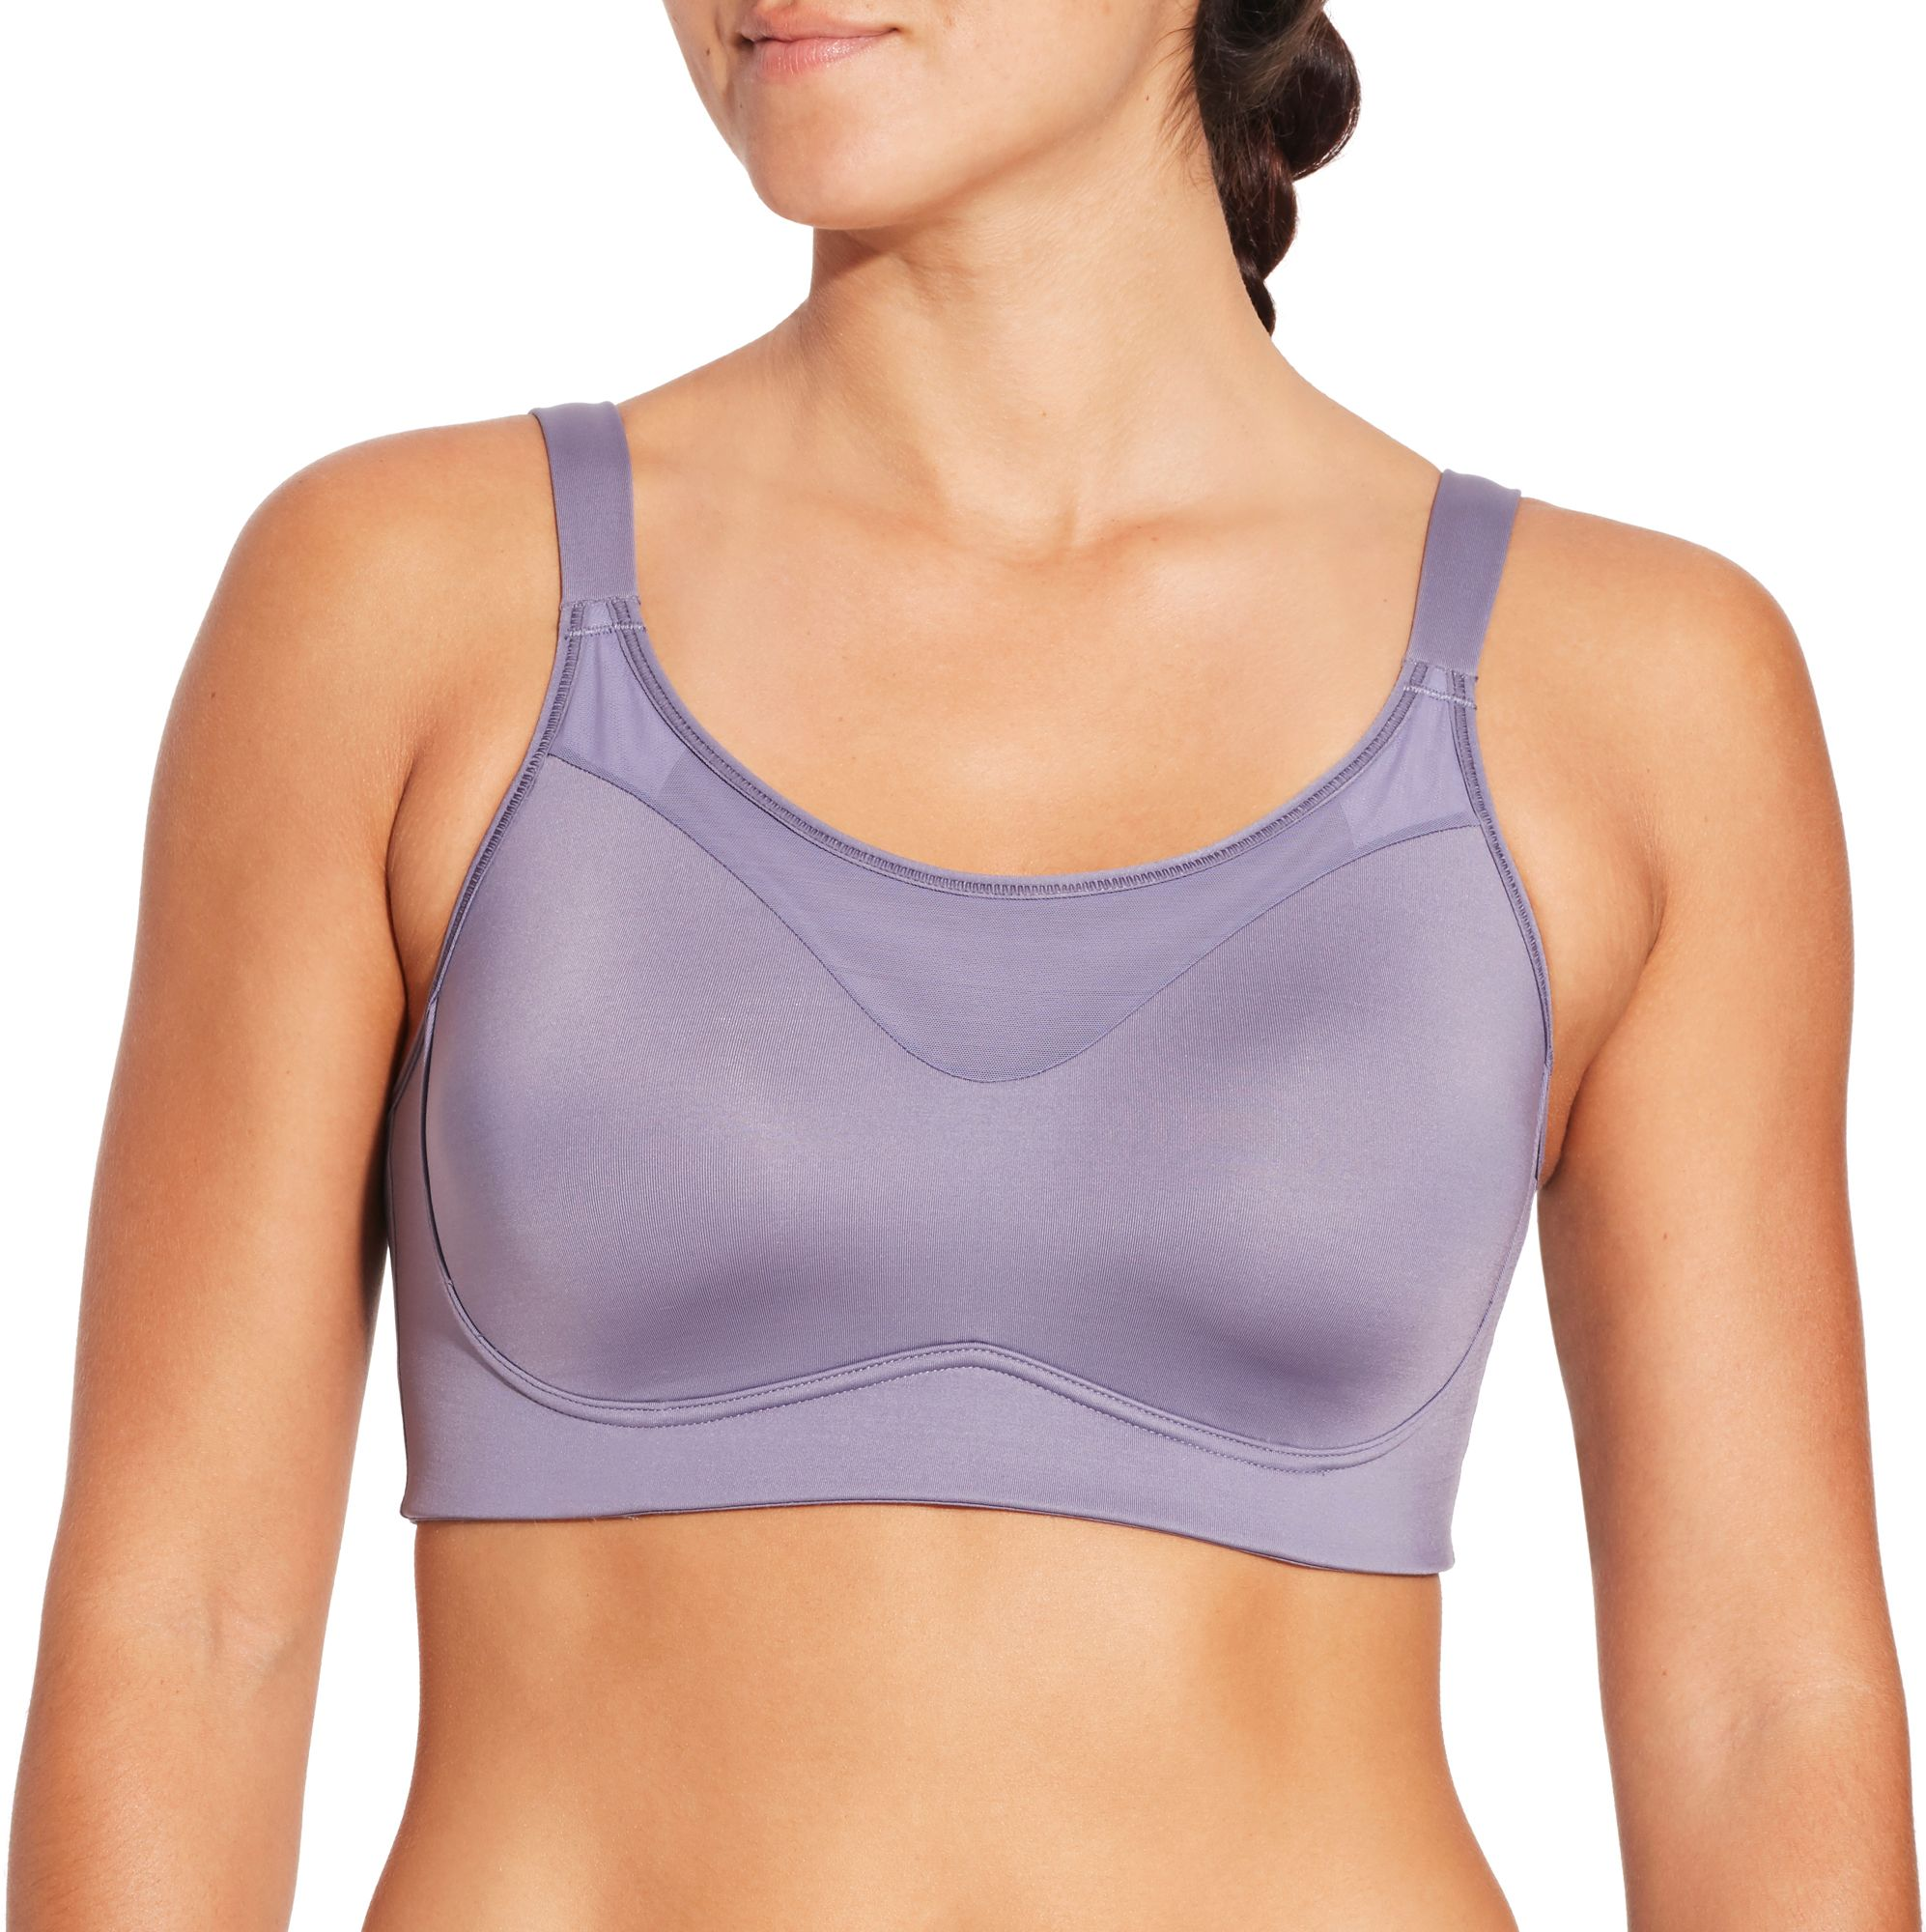 Calia By Carrie Underwood Women S Strength Mesh Inset Sports Bra Fitness Arel For Your Life Proposition 65 Warning Iconproposition Icon